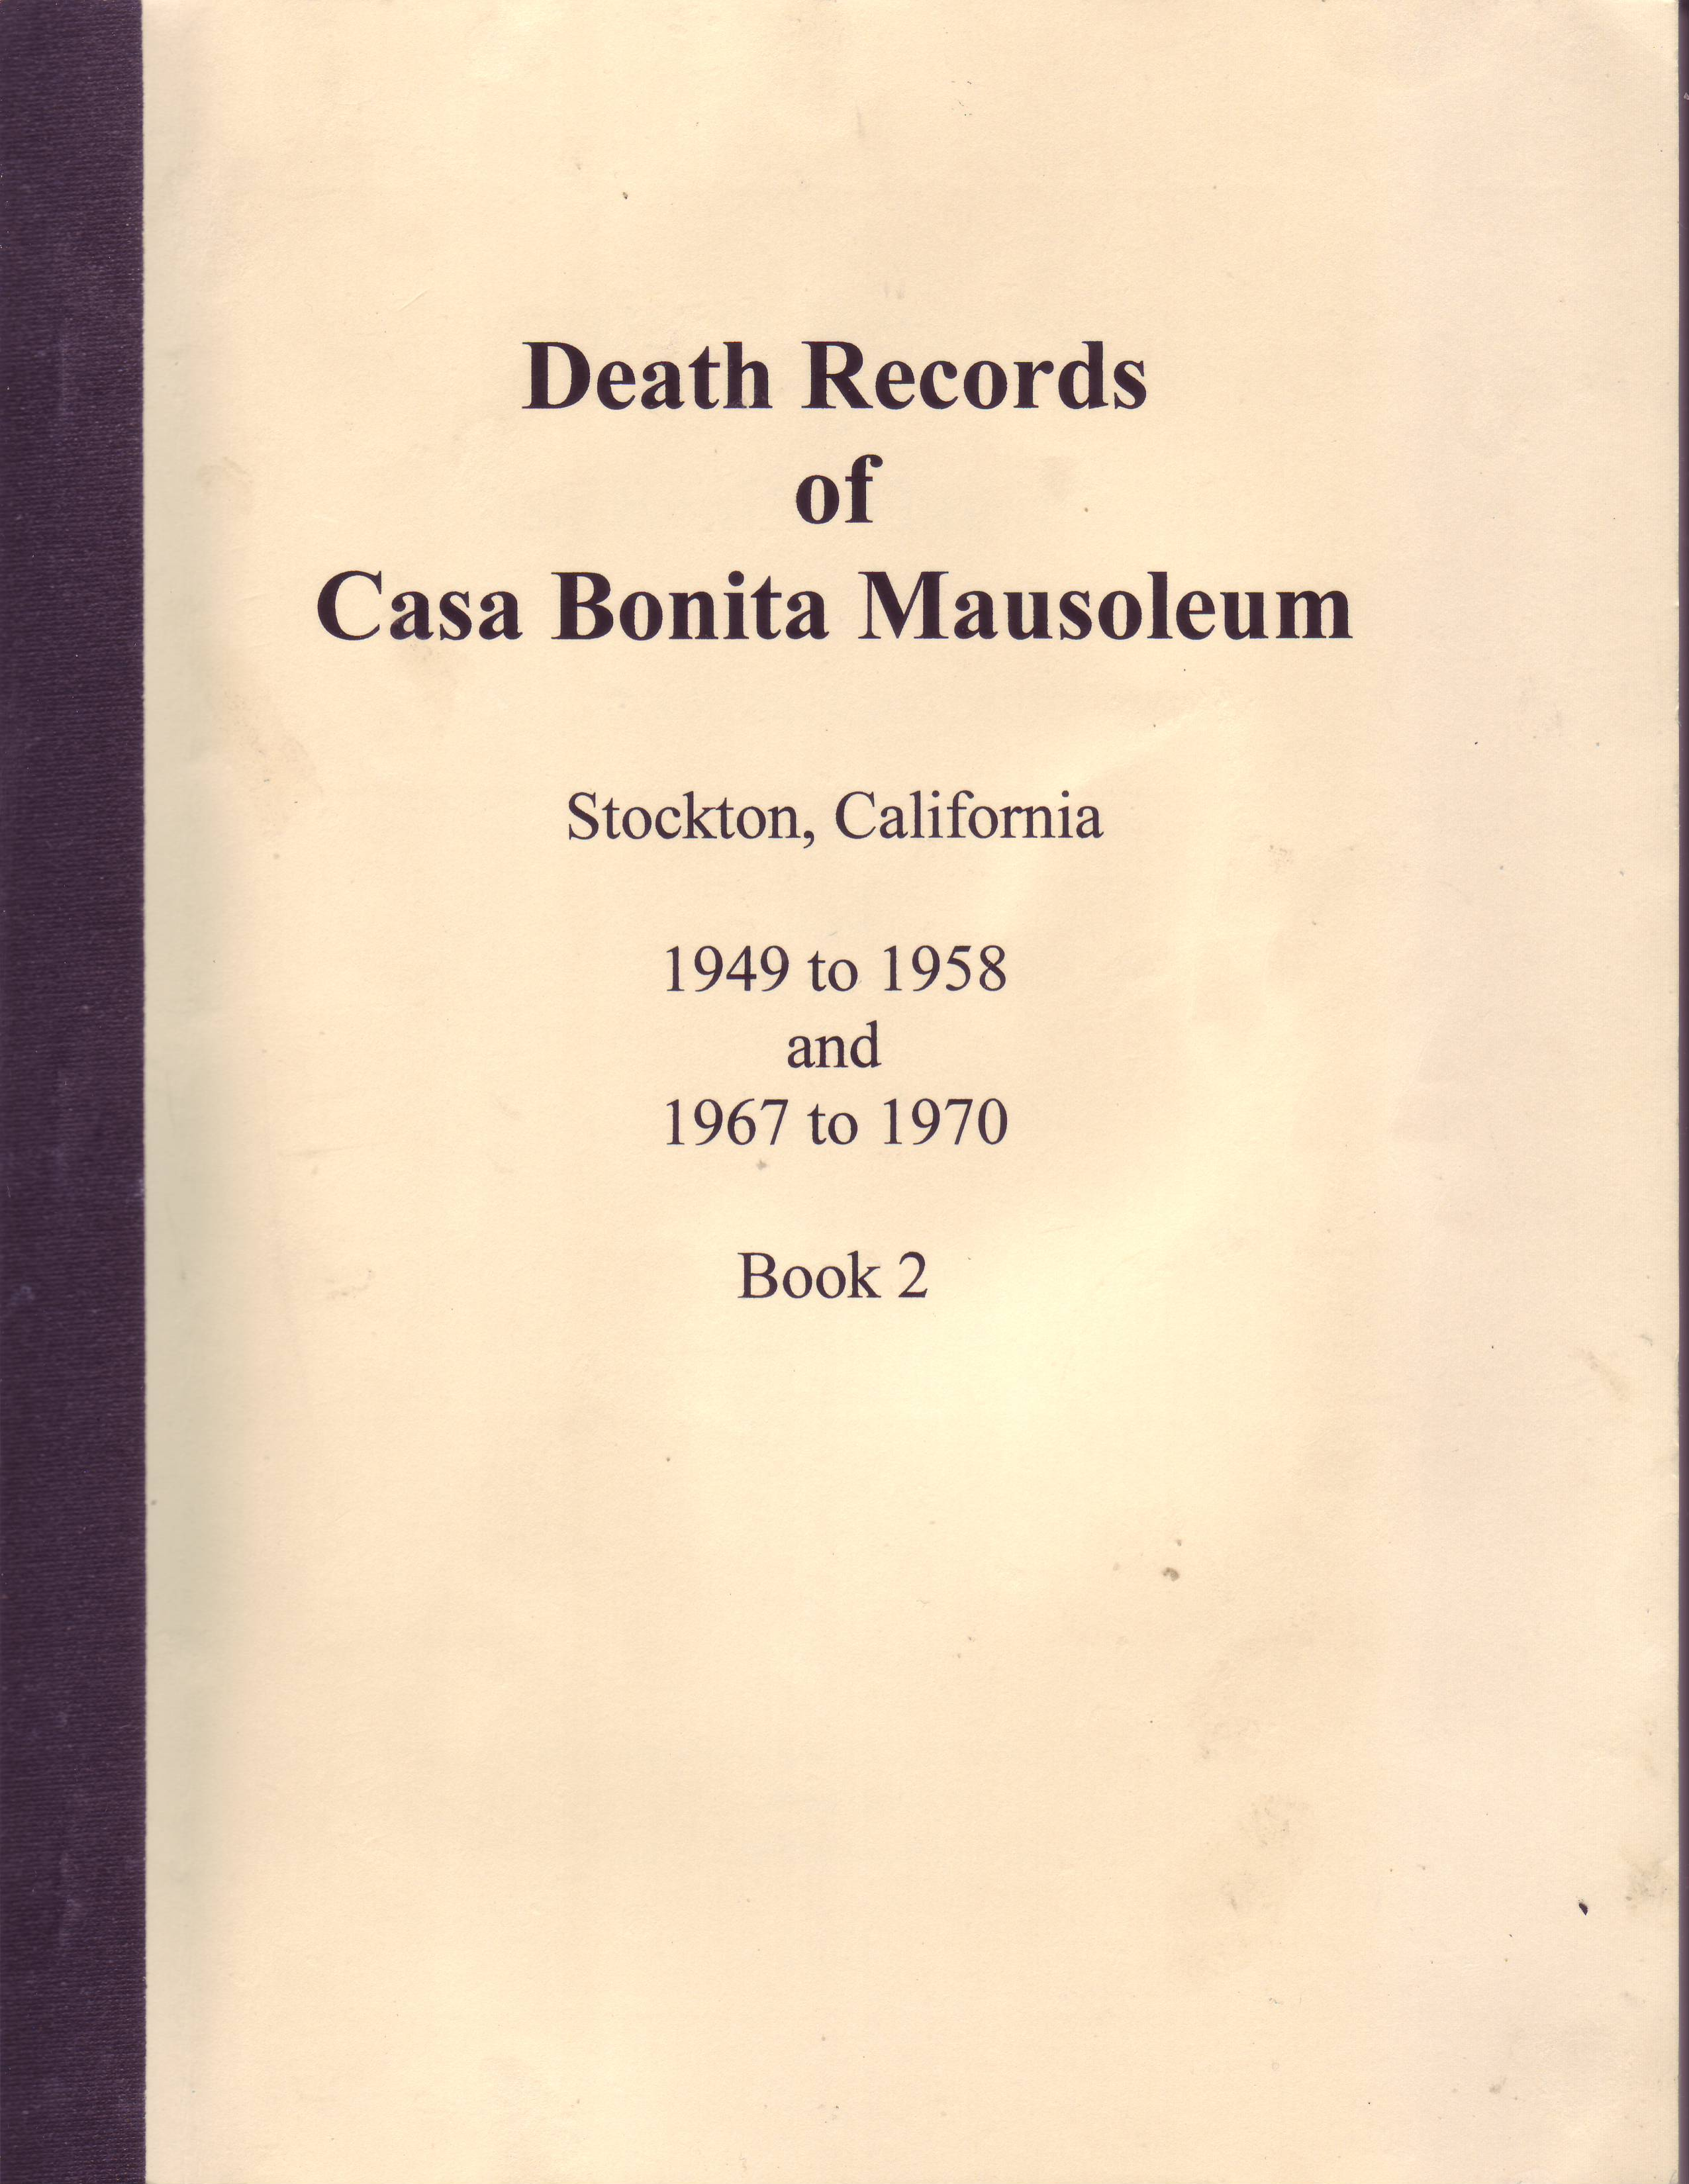 Death Records of Casa Bonita Mausoleum, Stockton, California, 1949 to 1958 and 1967 to 1970, Book 2